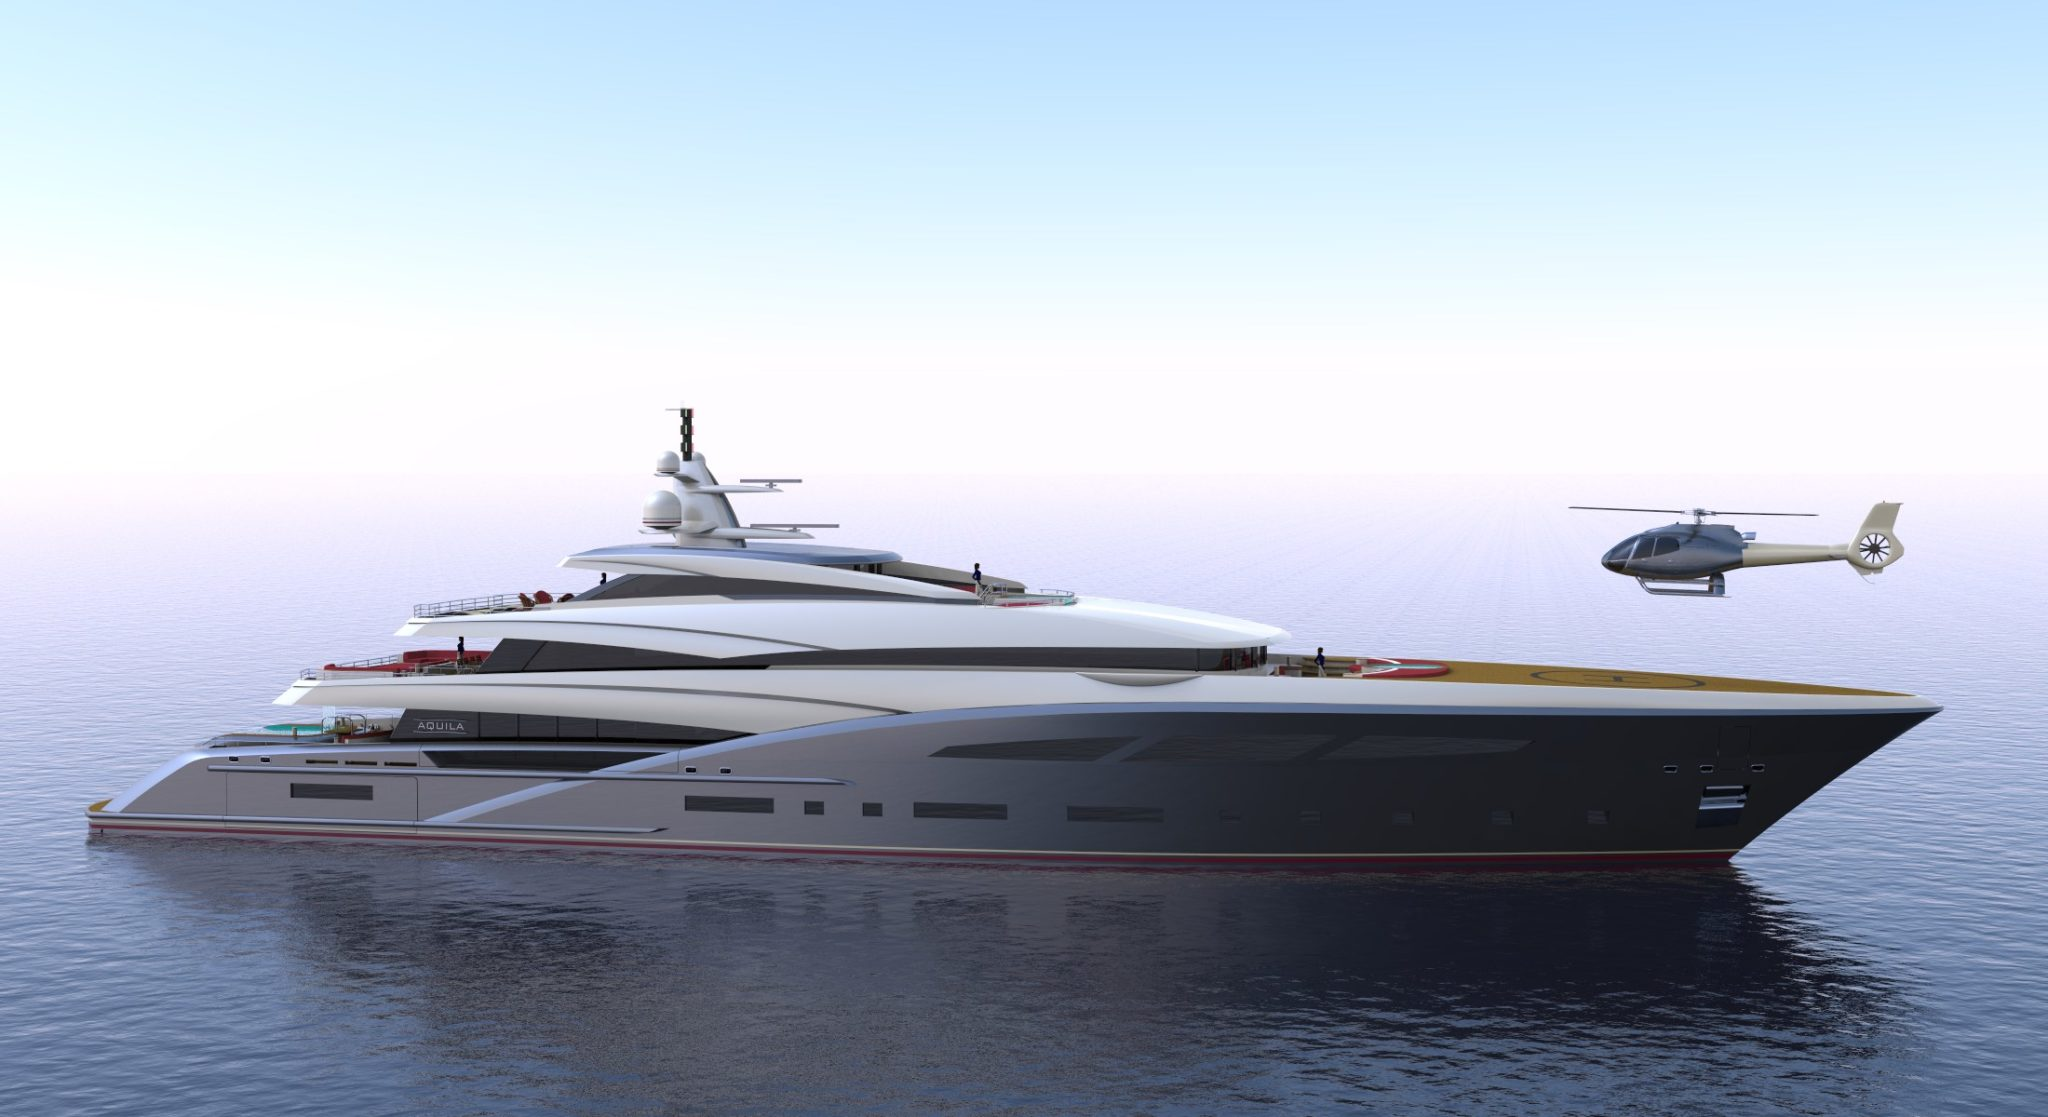 New Renderings for 72m AQUILA